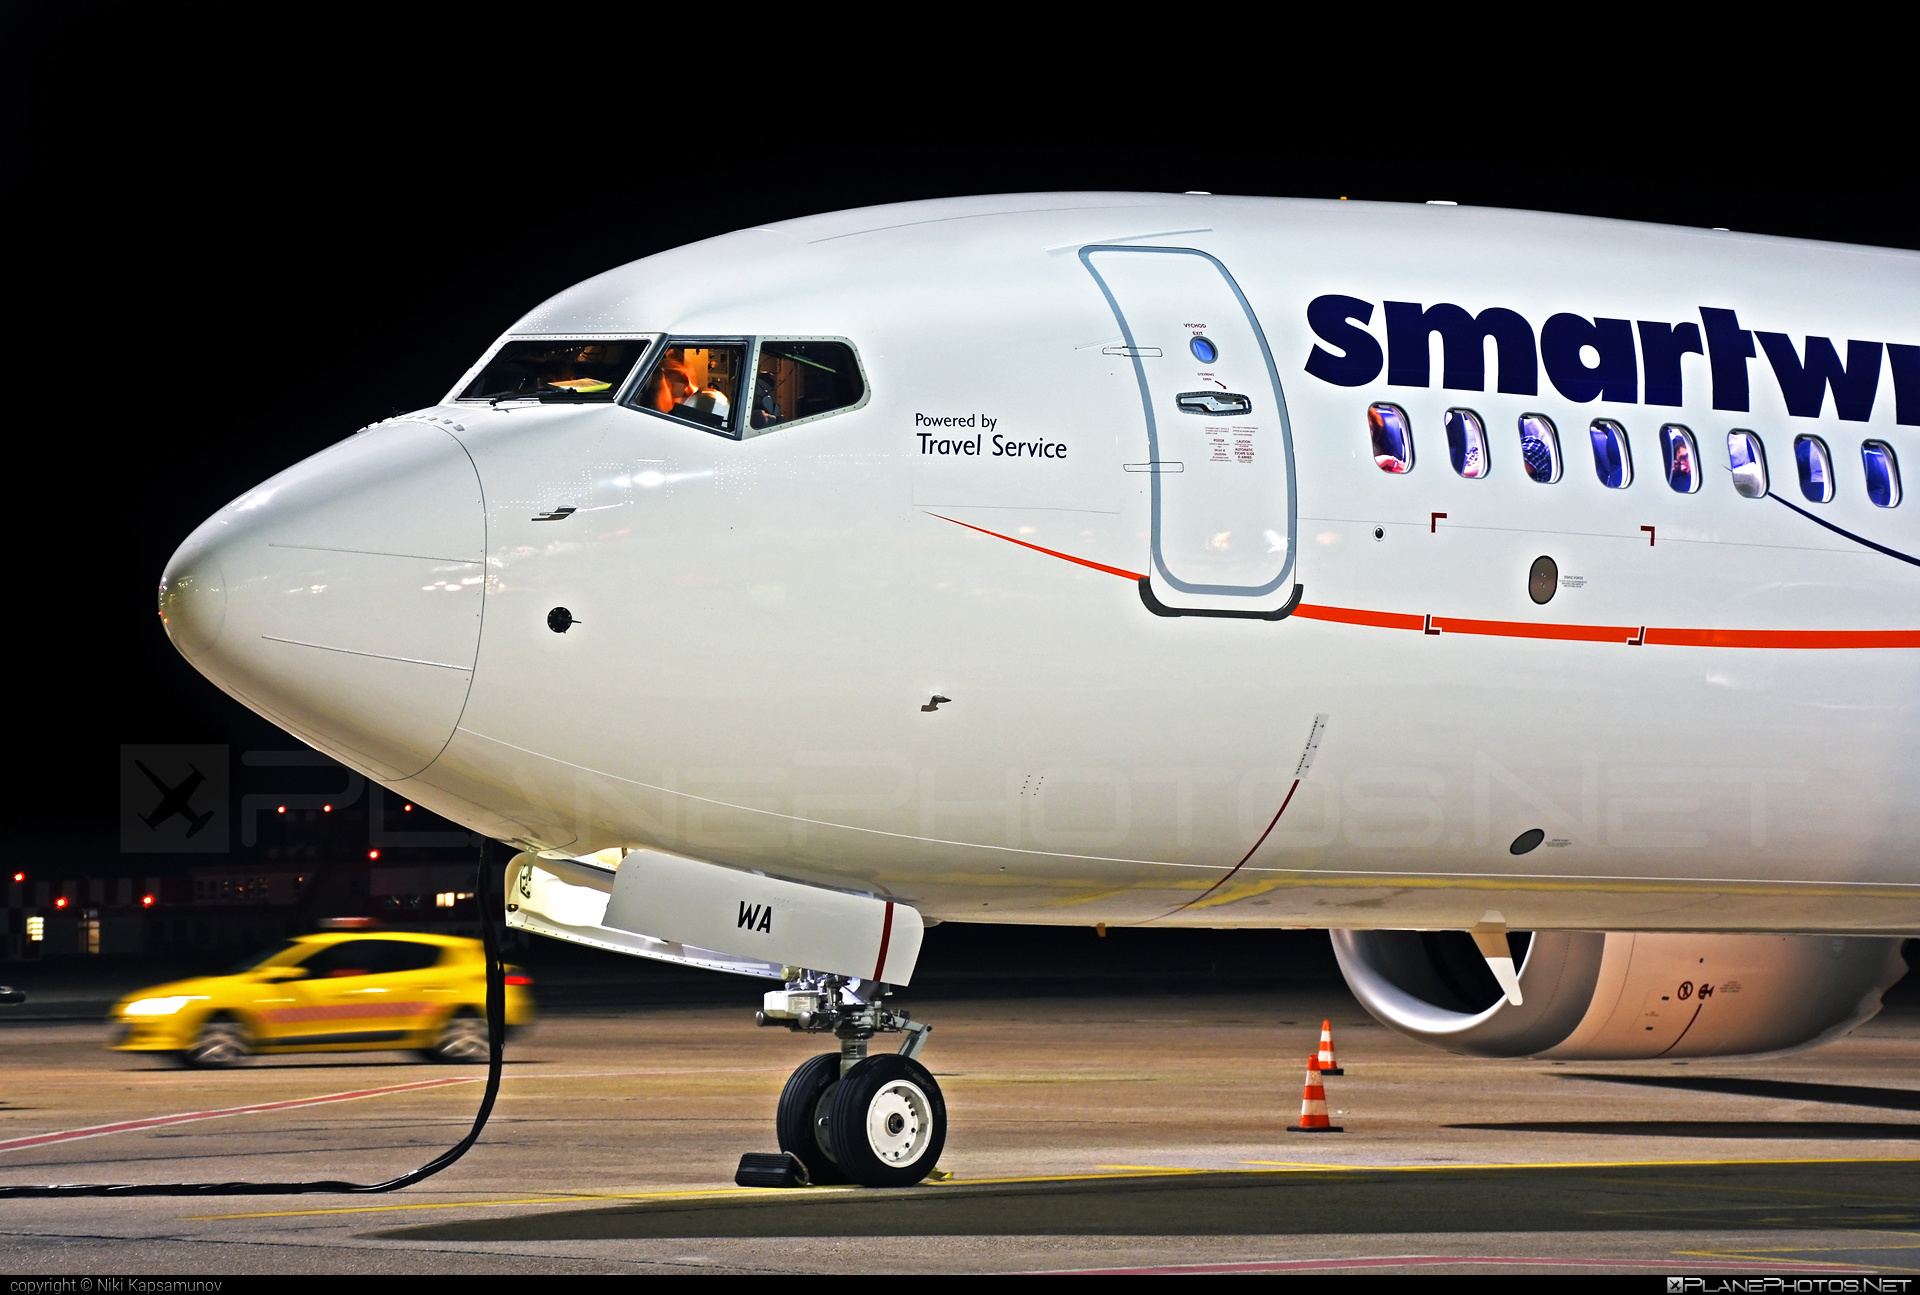 Boeing 737-8 MAX - OK-SWA operated by Smart Wings #b737 #b737max #boeing #boeing737 #smartwings